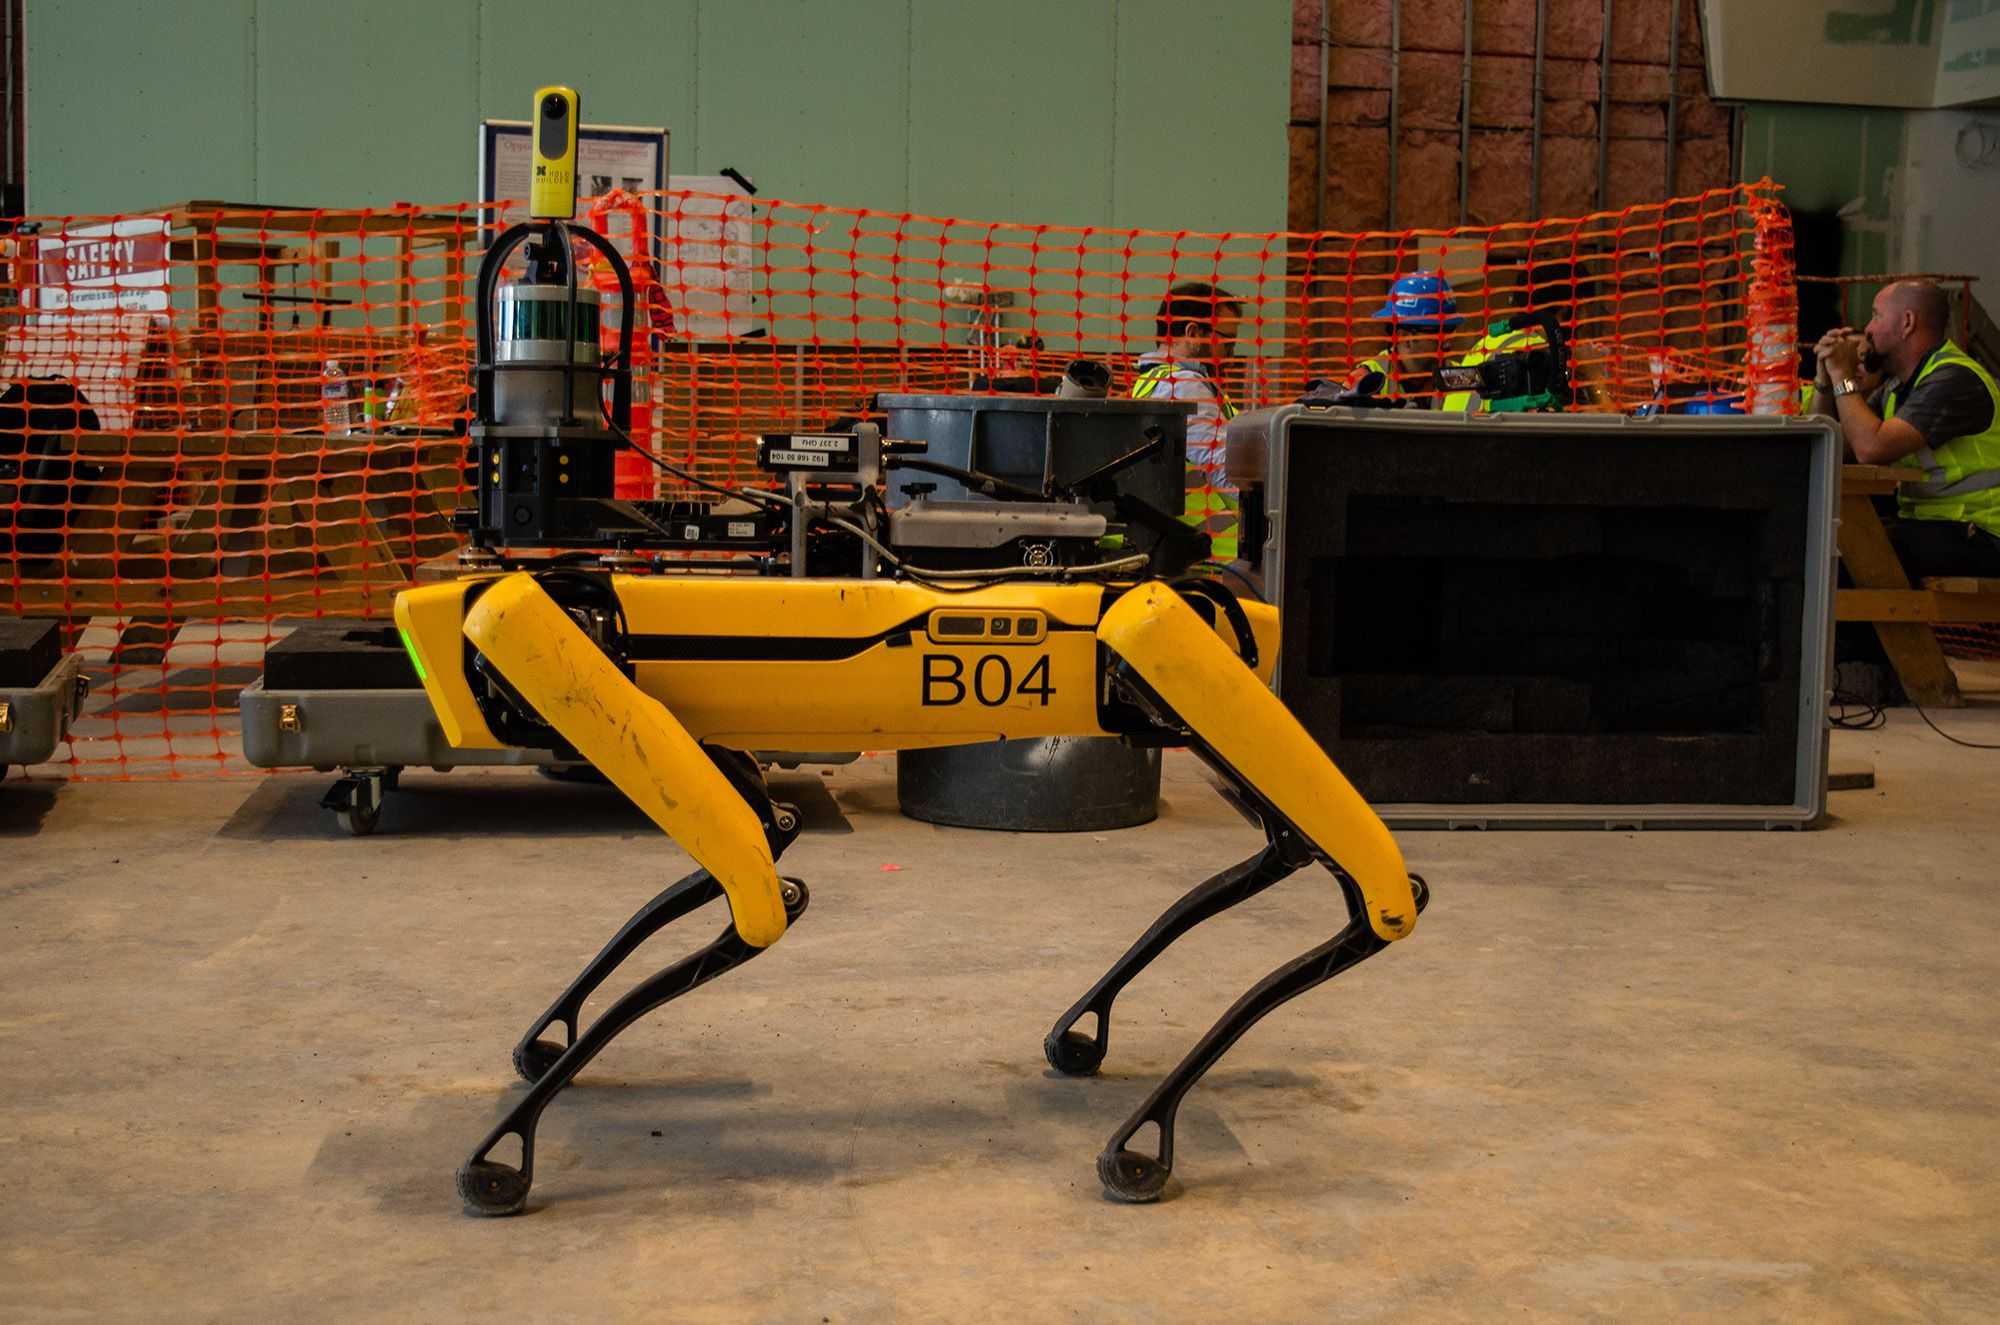 Equipped with a 360° camera, Spot walks a jobsite and captures 360° images.